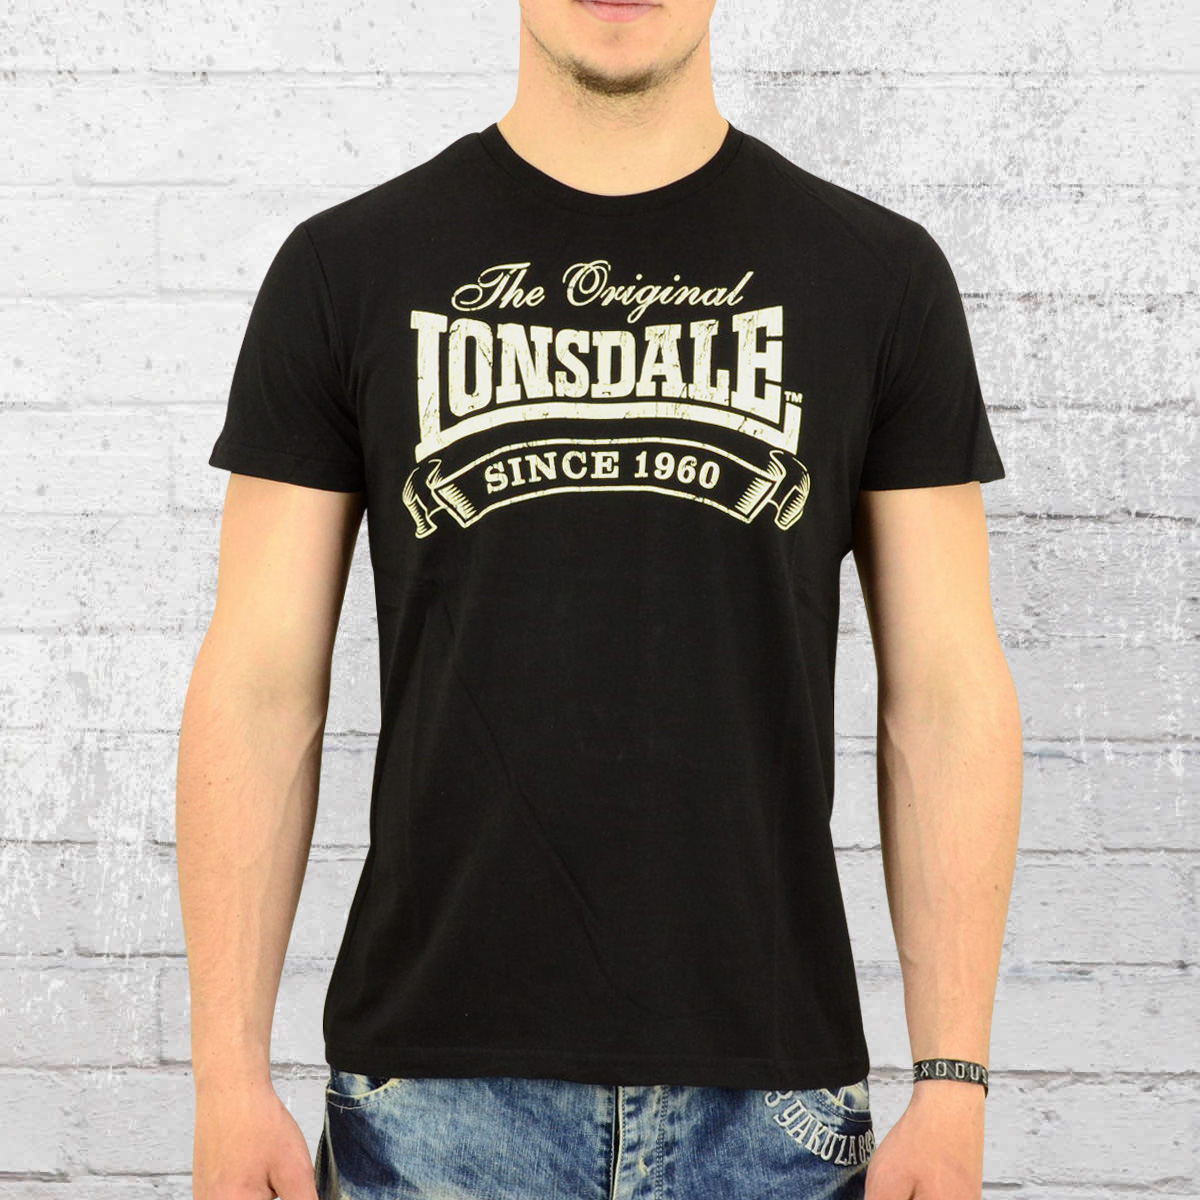 jetzt bestellen lonsdale london t shirt herren martock schwarz krasse. Black Bedroom Furniture Sets. Home Design Ideas